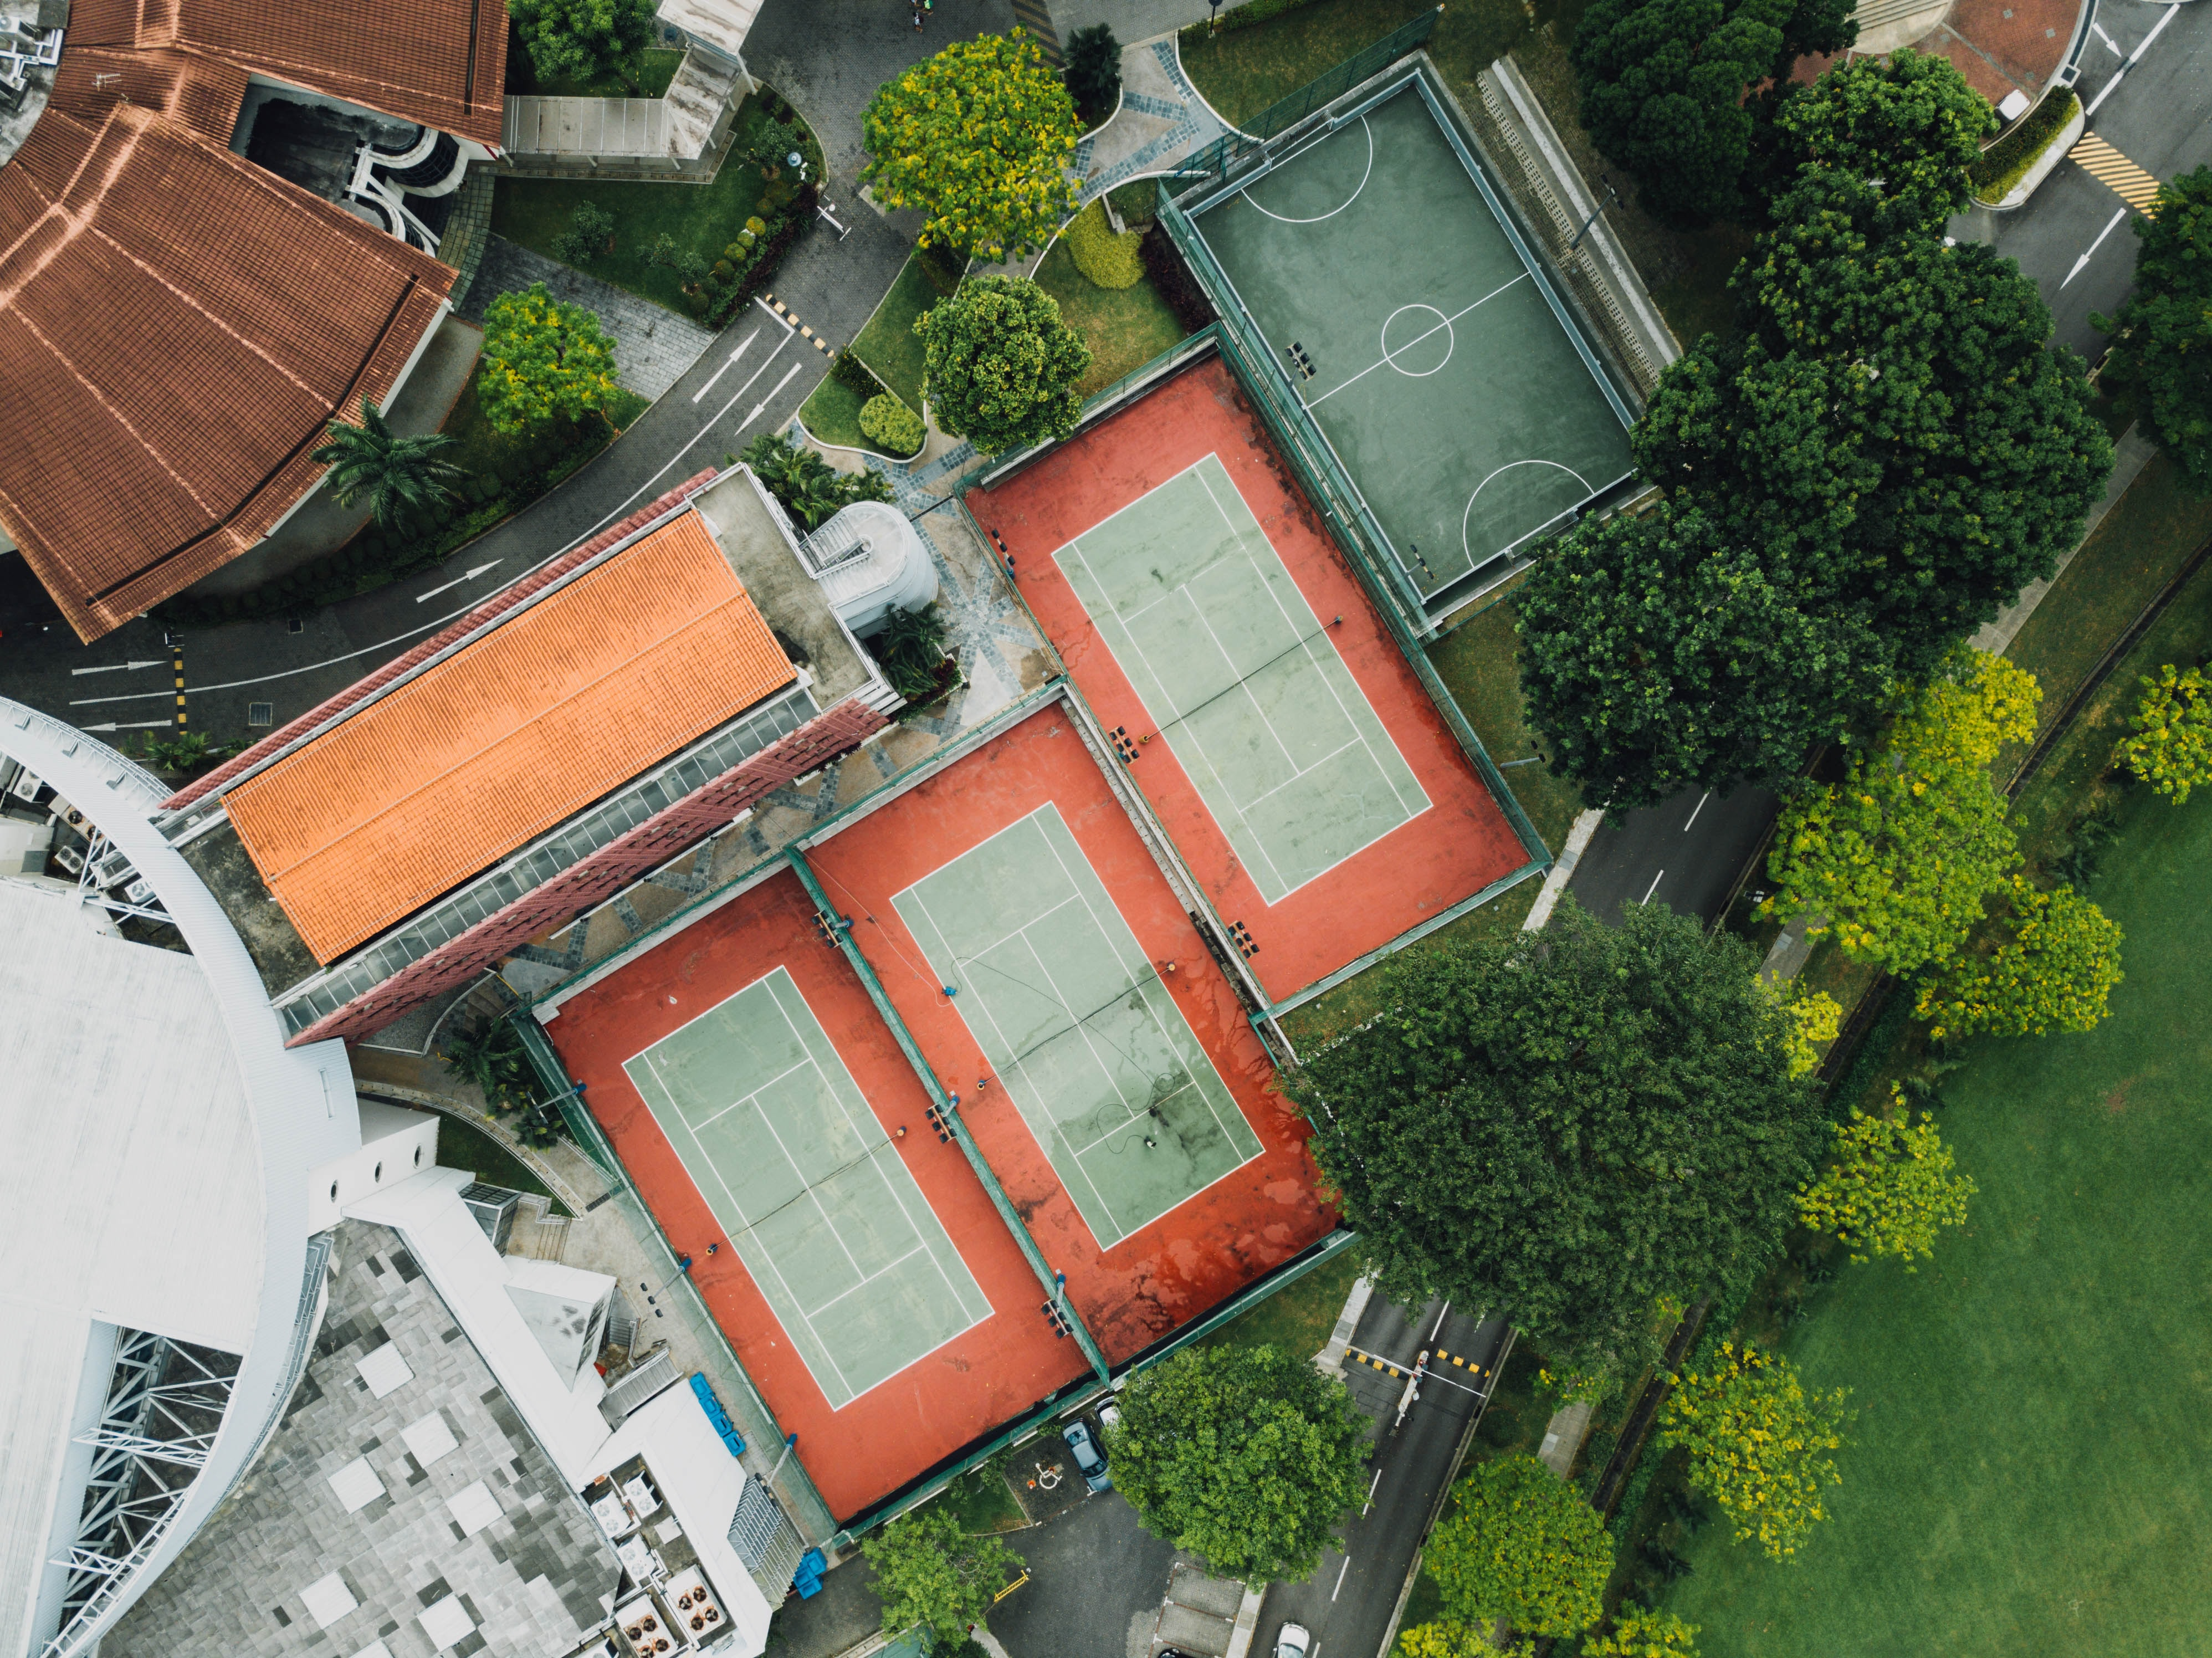 aerial view of basketball and tennis courts